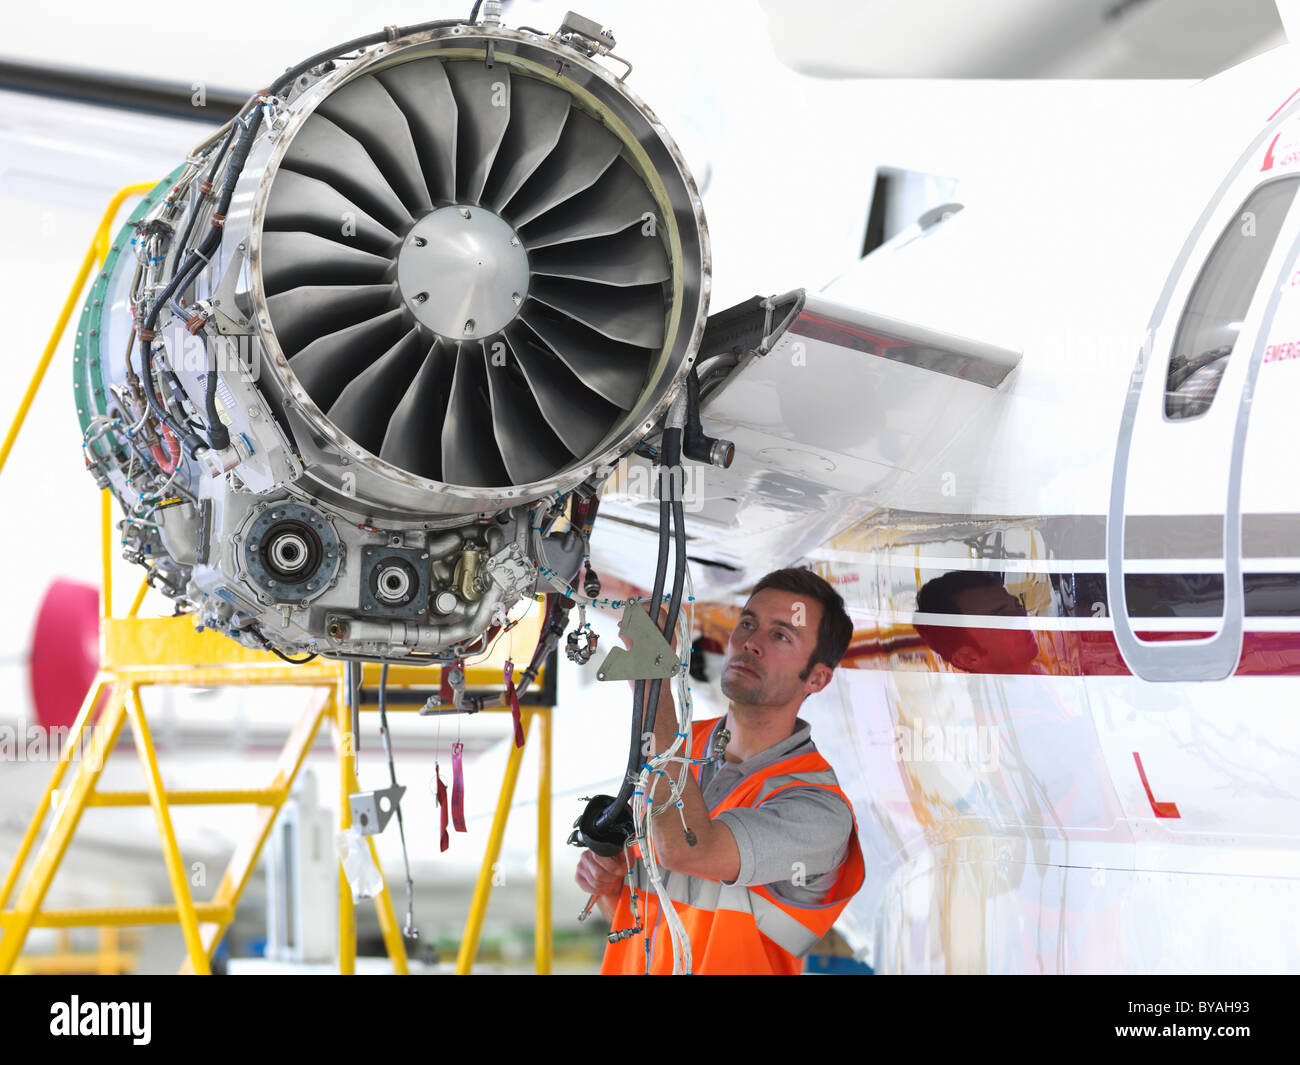 Engineer inspects jet engine - Stock Image